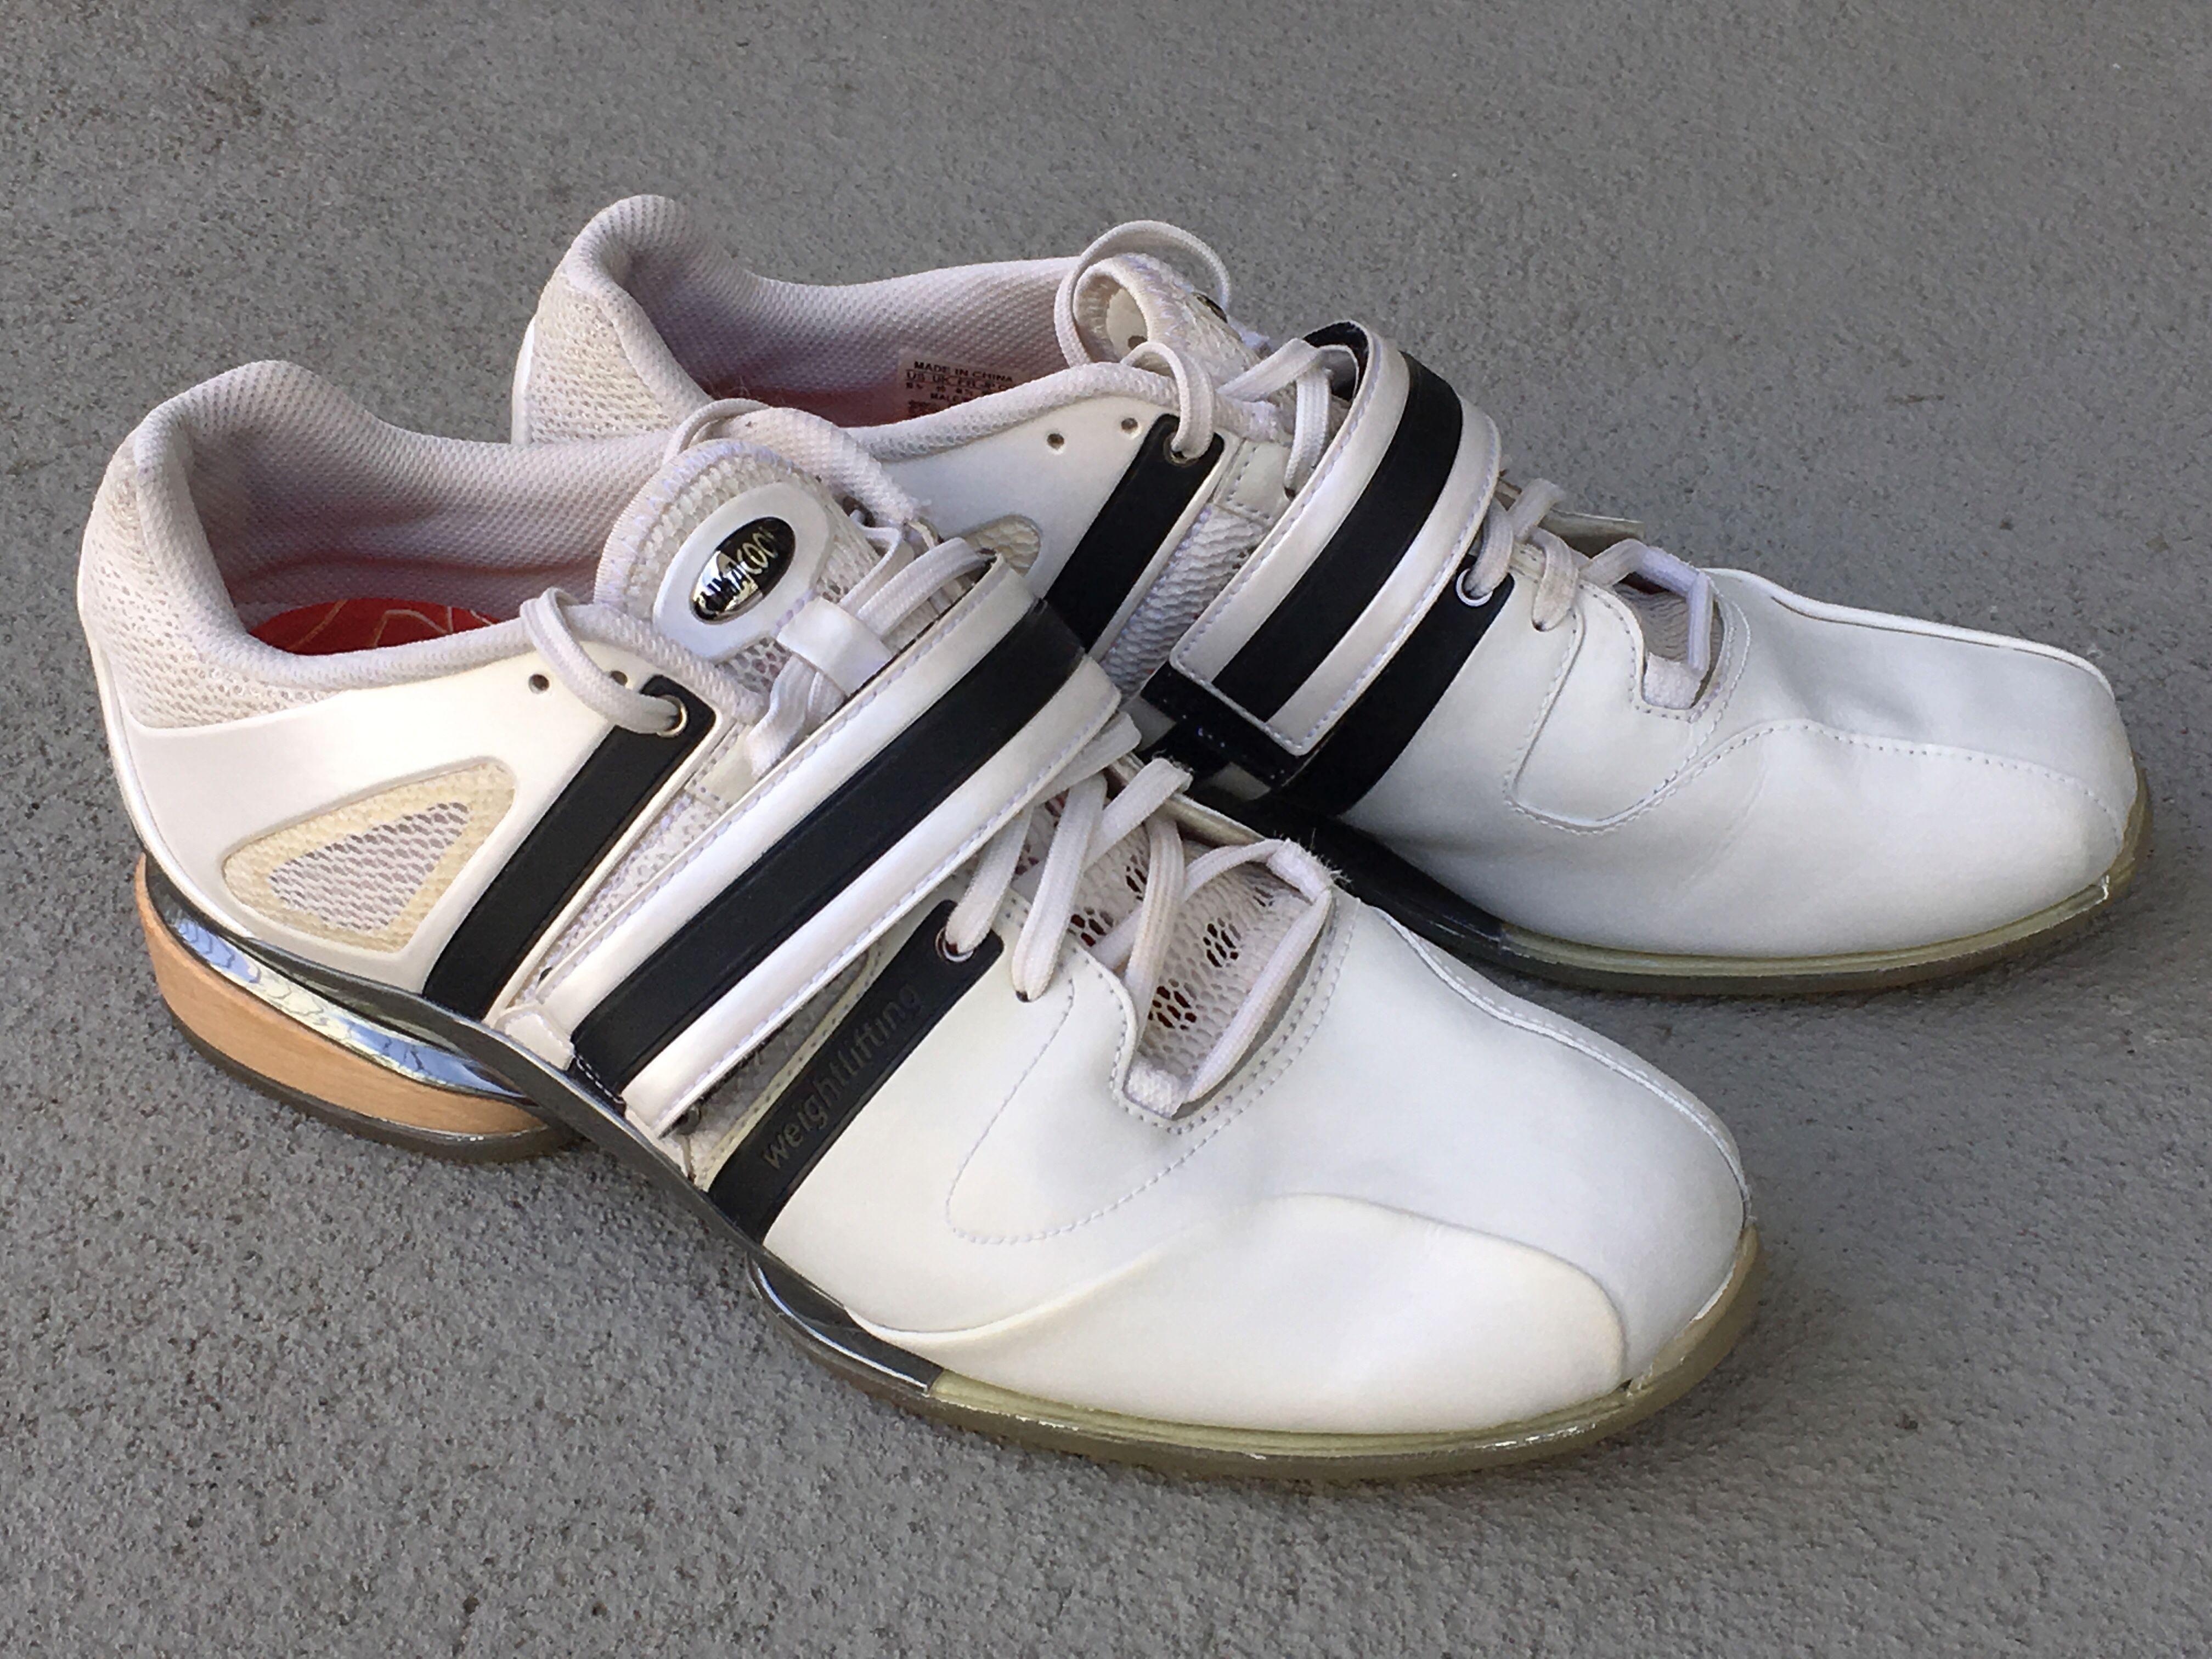 Adidas Adistar Weightlifting Shoes Ebay Silver Superstar